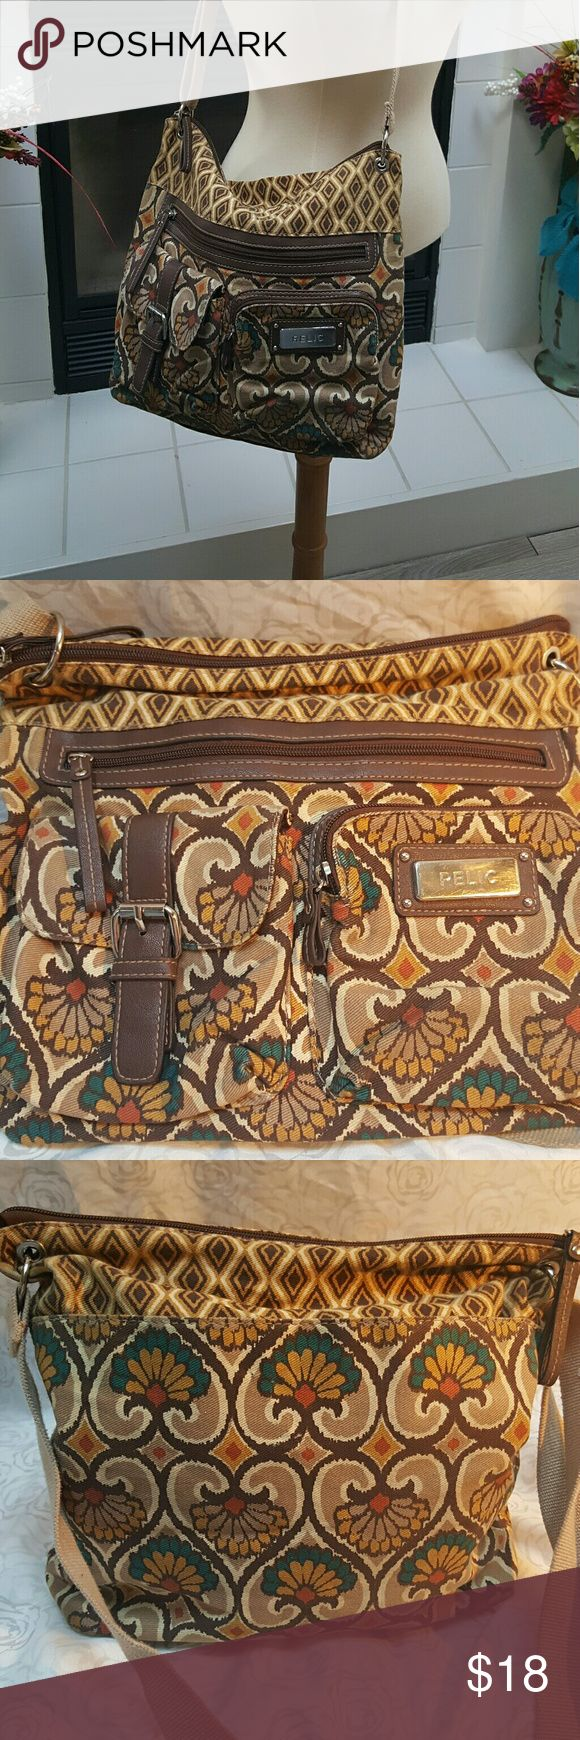 Relic Hipster purse Relic Crossbody floral purse Relic Bags Crossbody Bags